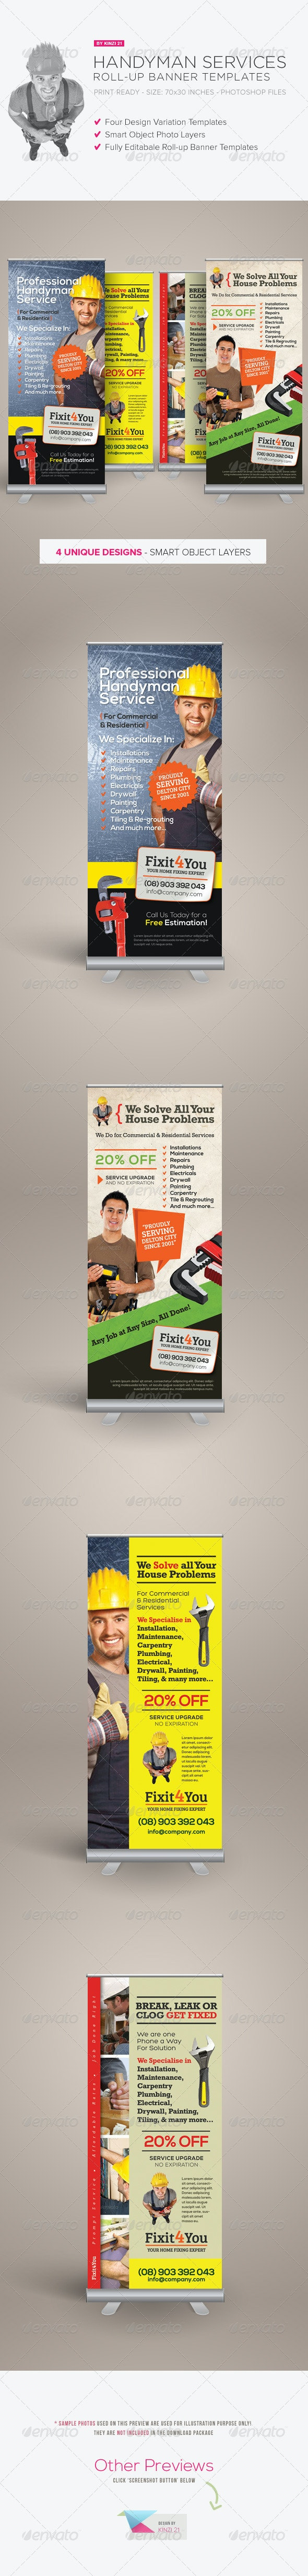 Handyman Services Roll-up Banners - Signage Print Templates